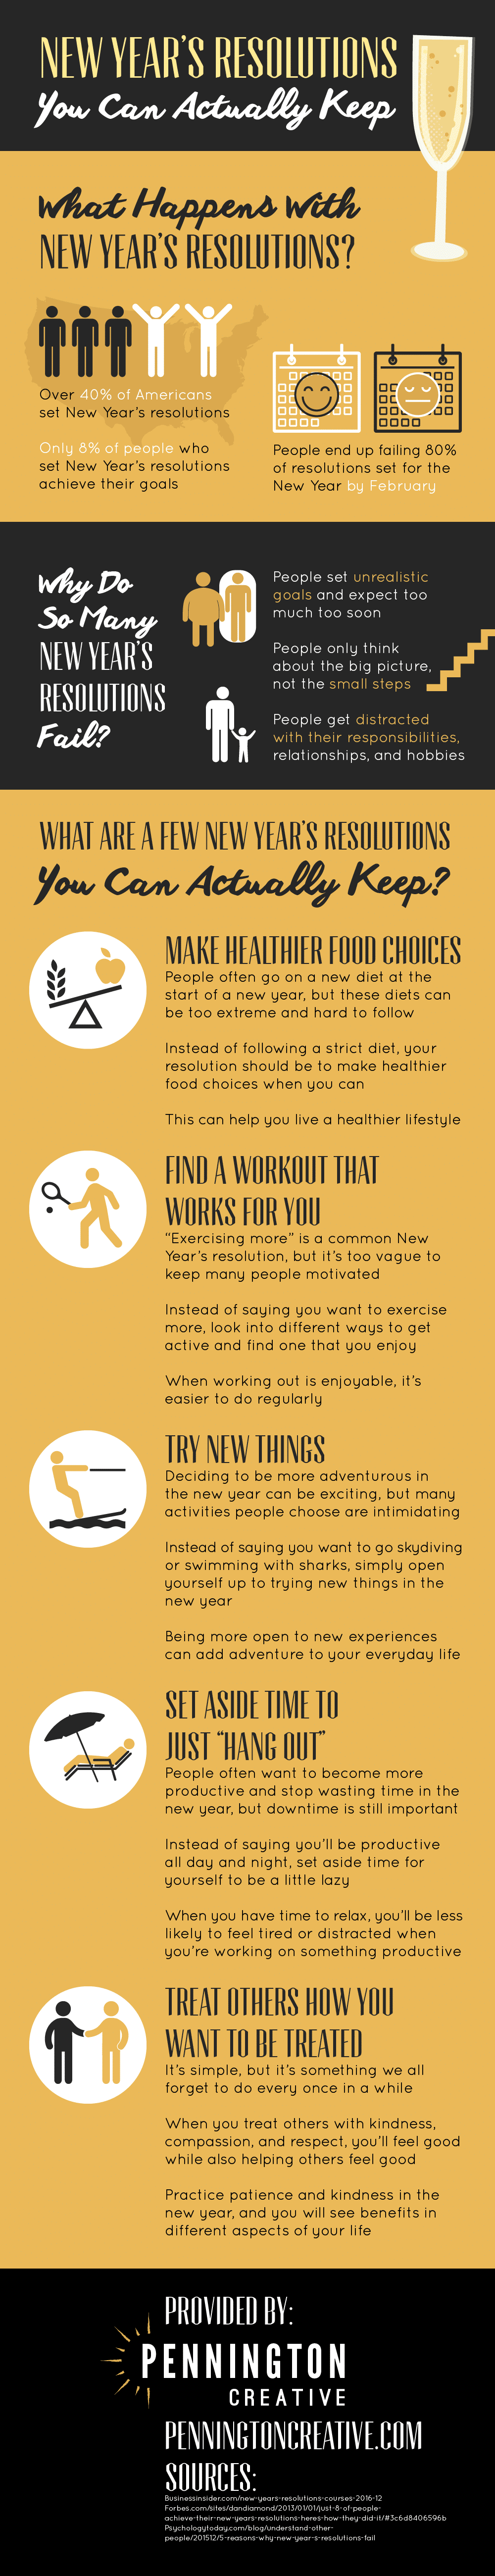 Infographic about New Year's resolutions and how to keep them.